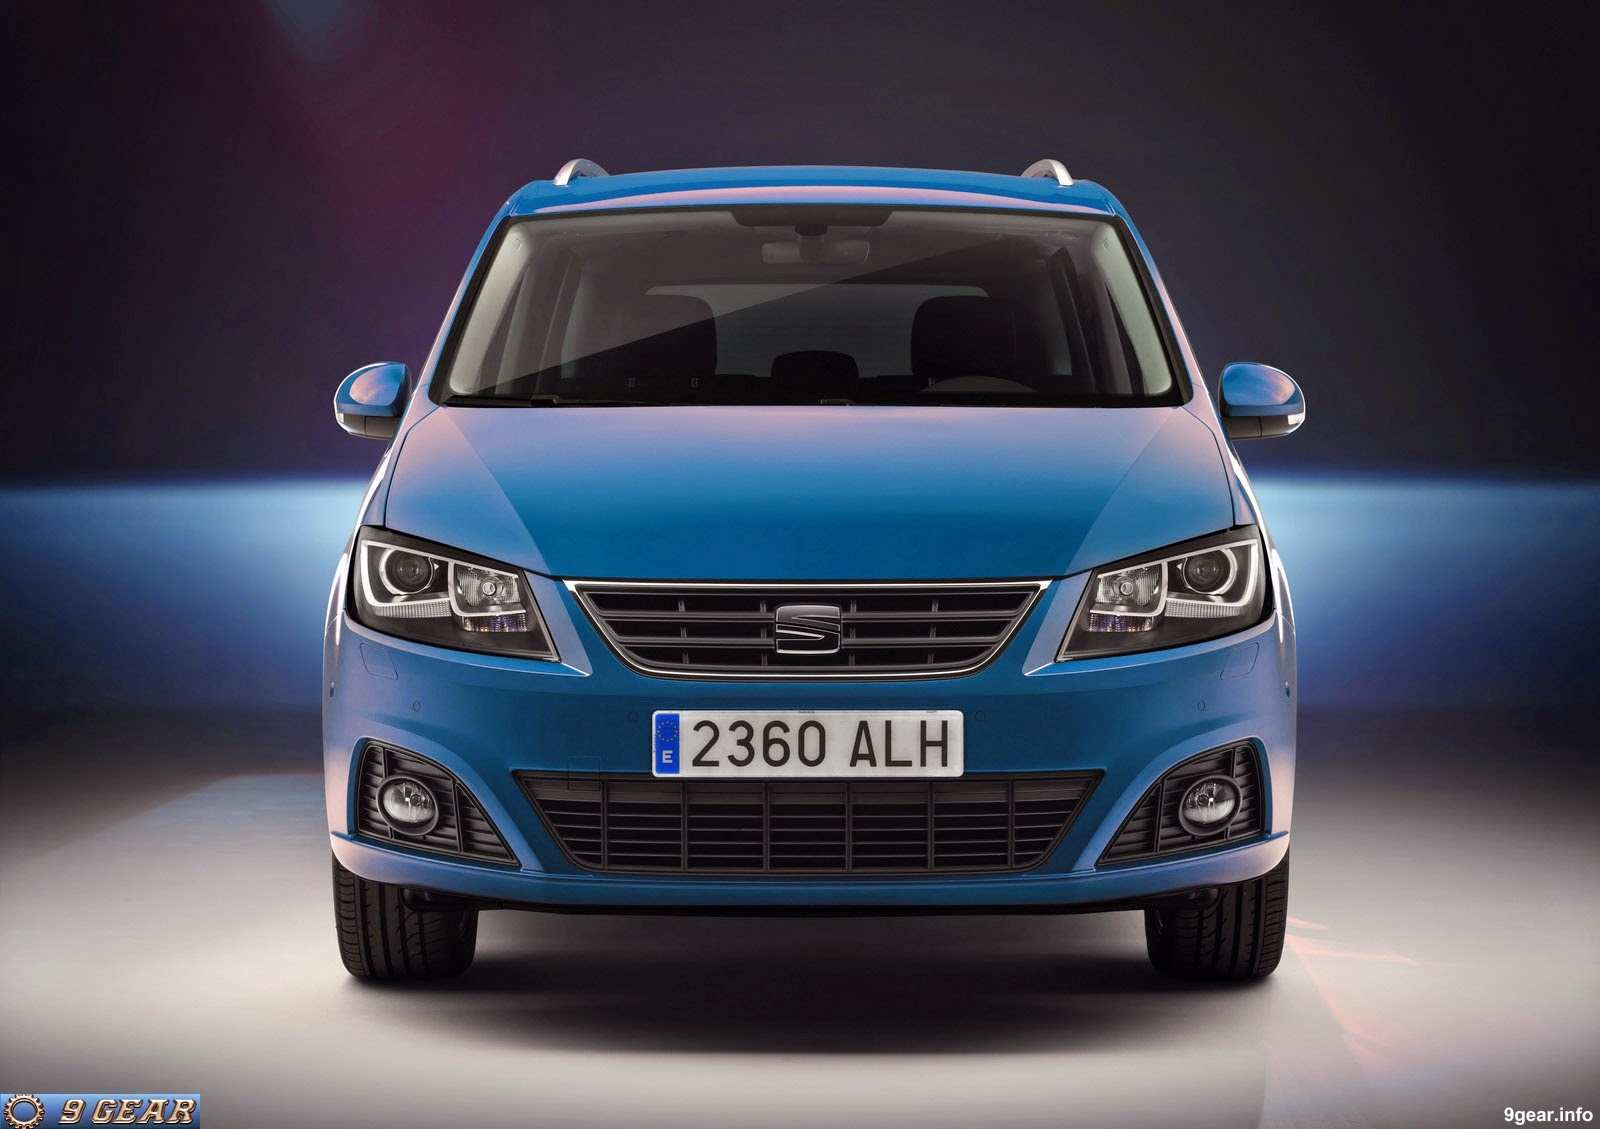 18 All New 2020 Seat Alhambra Interior for 2020 Seat Alhambra